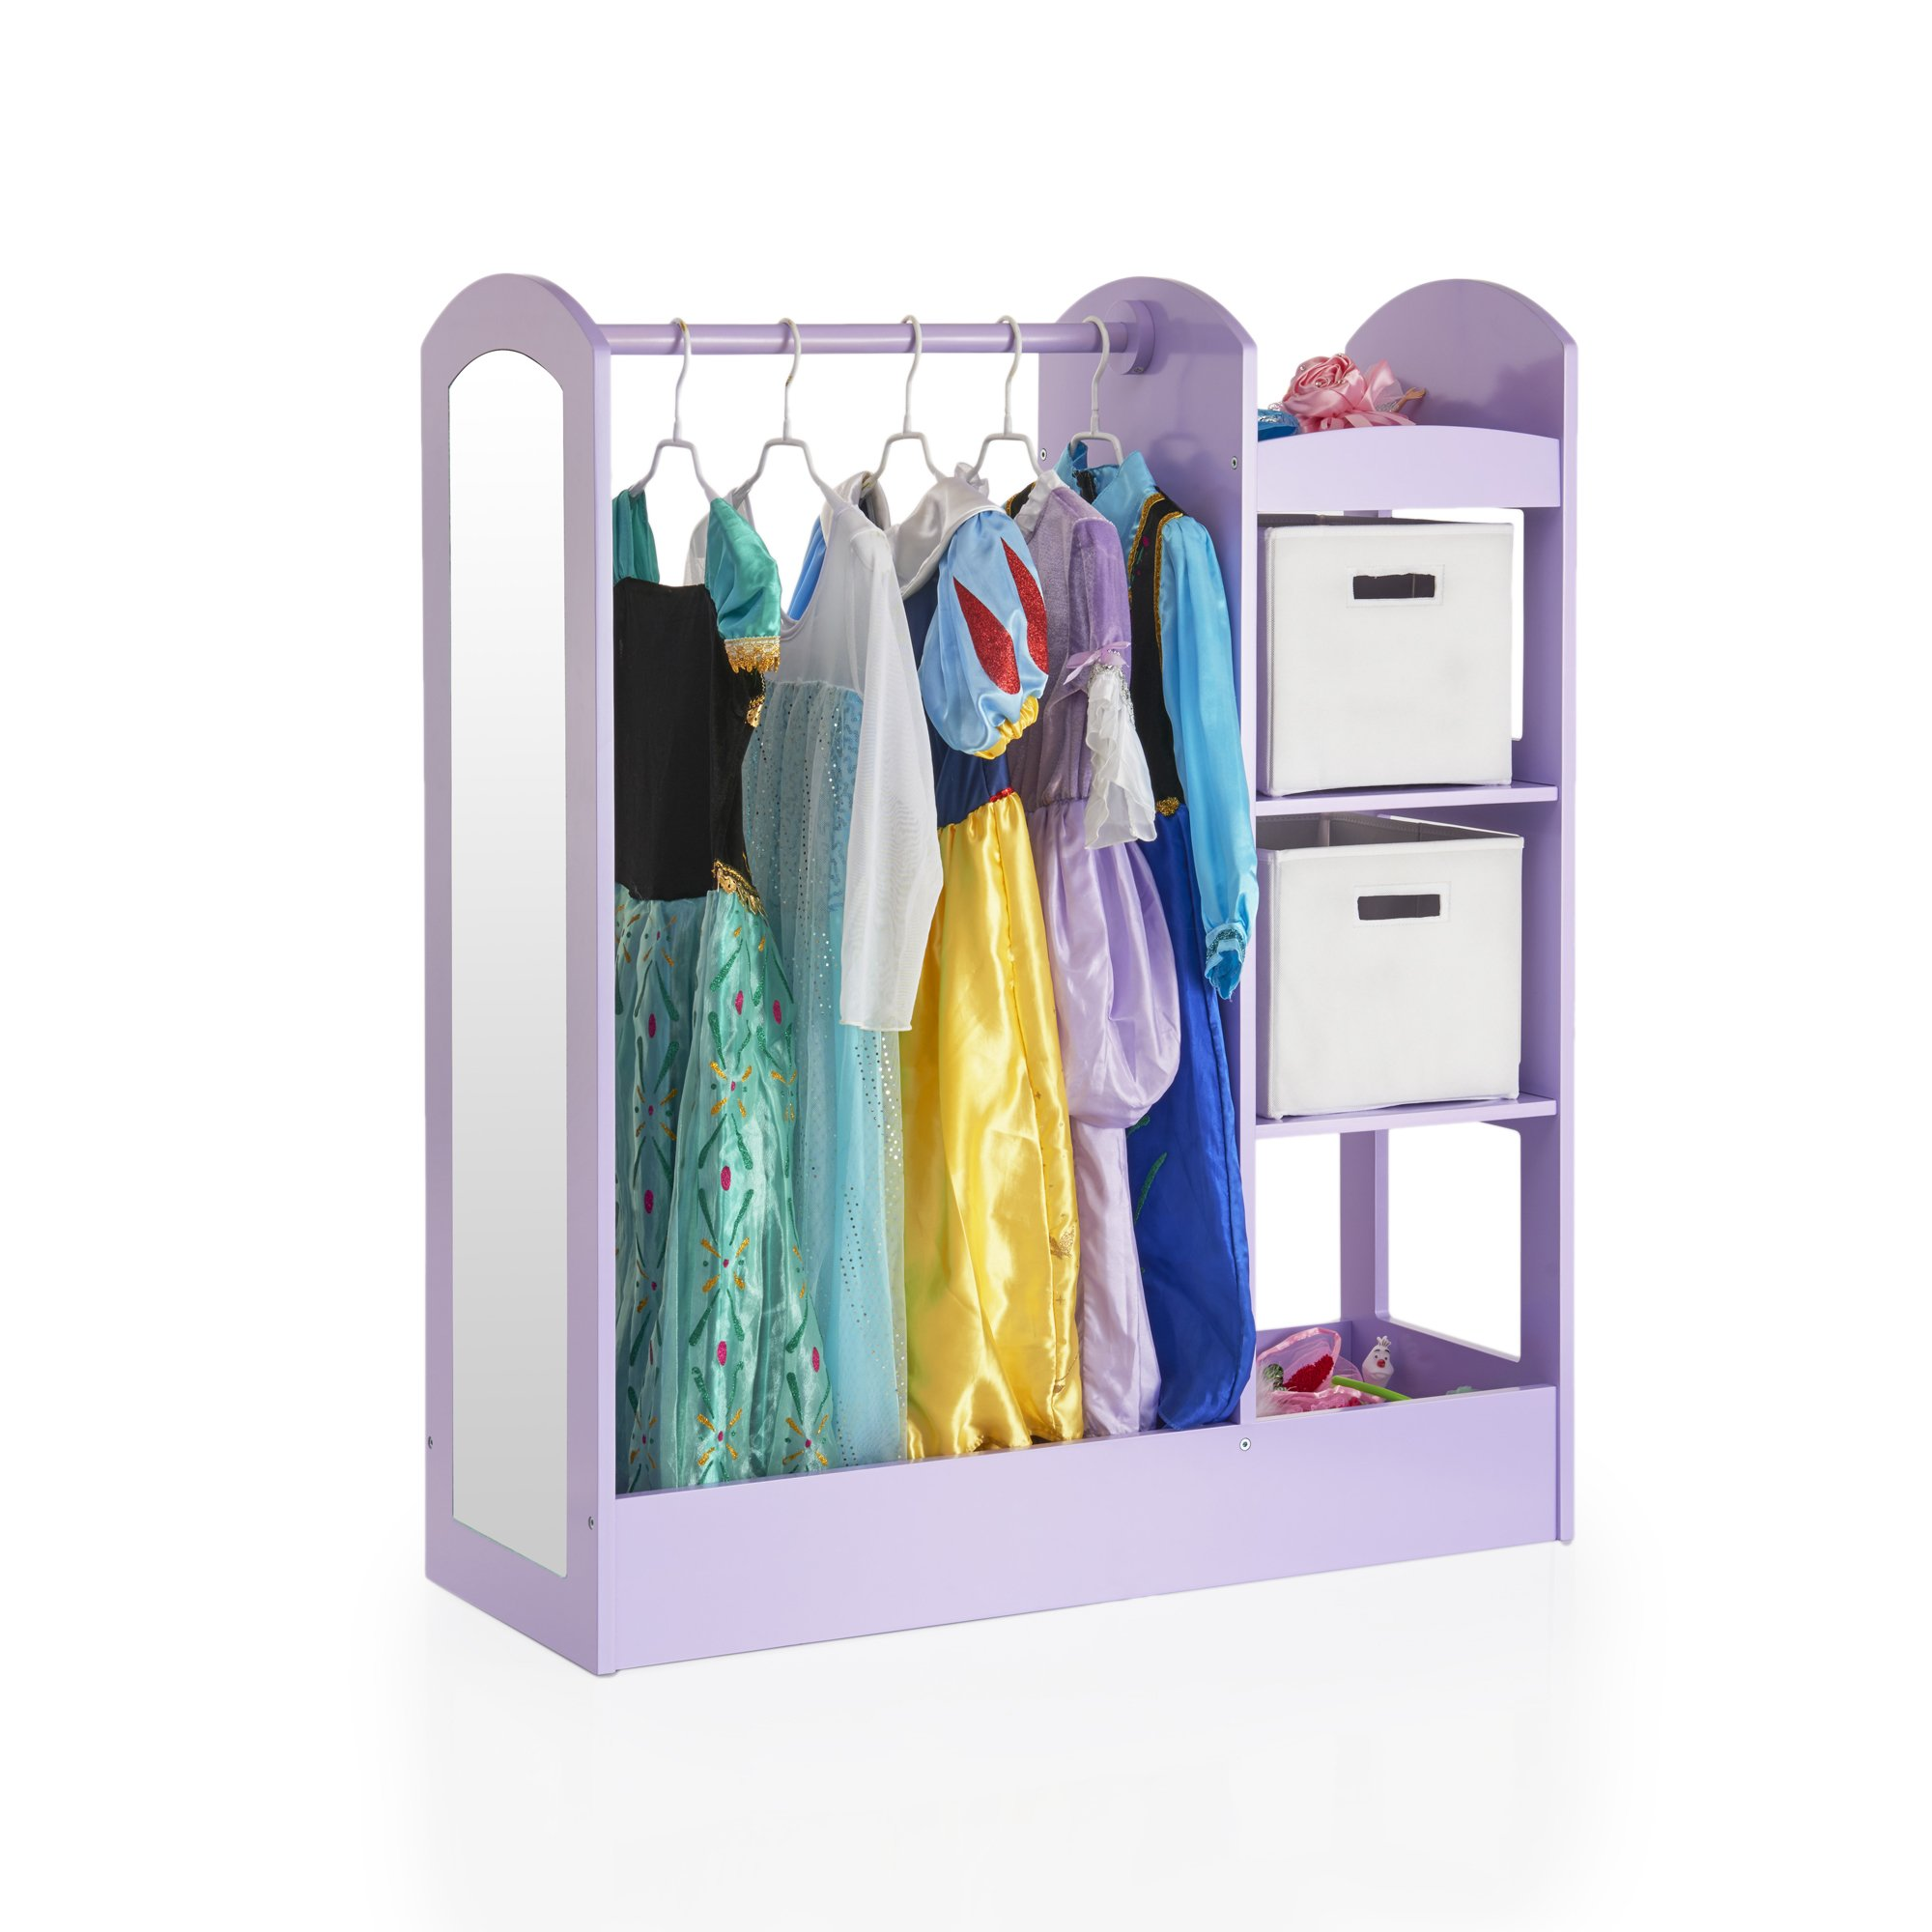 Guidecraft See and Store Dress Up Center Lavender - Armoire, Dresser Kids' Furniture